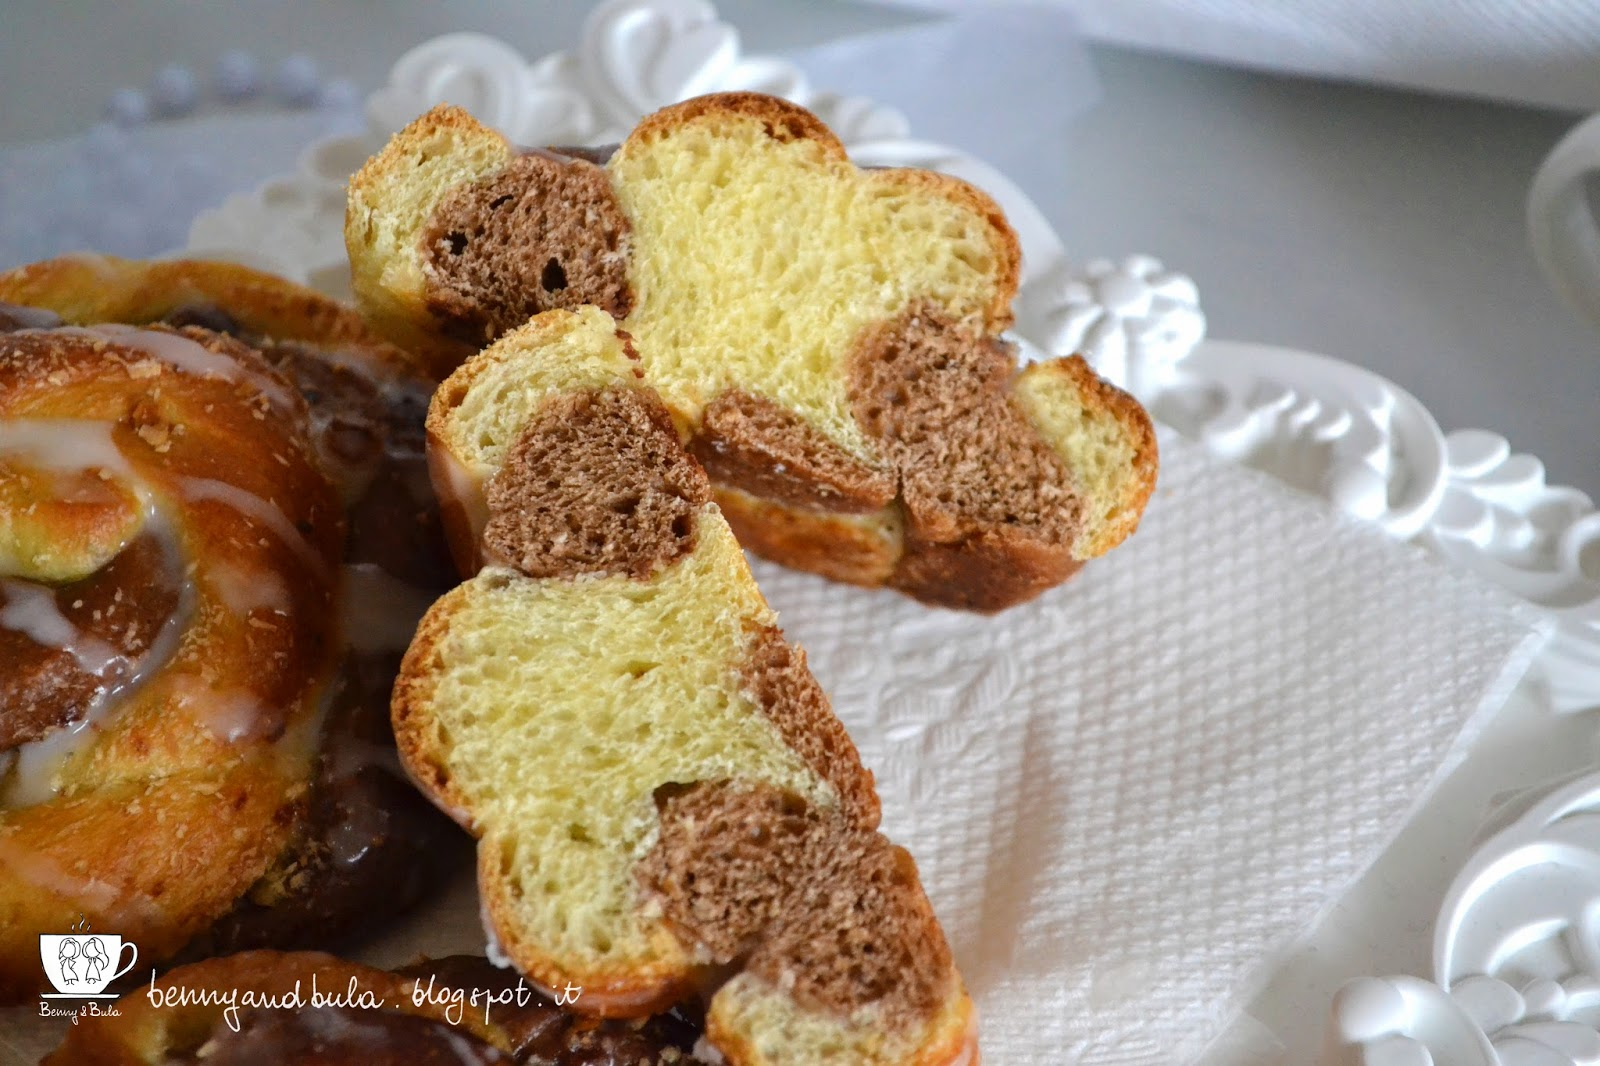 ricetta girandole o girelle brioche bicolore con cioccolato nocciole e cocco/ twisted brioche buns with chocolate hezelnuts and coconut recipe